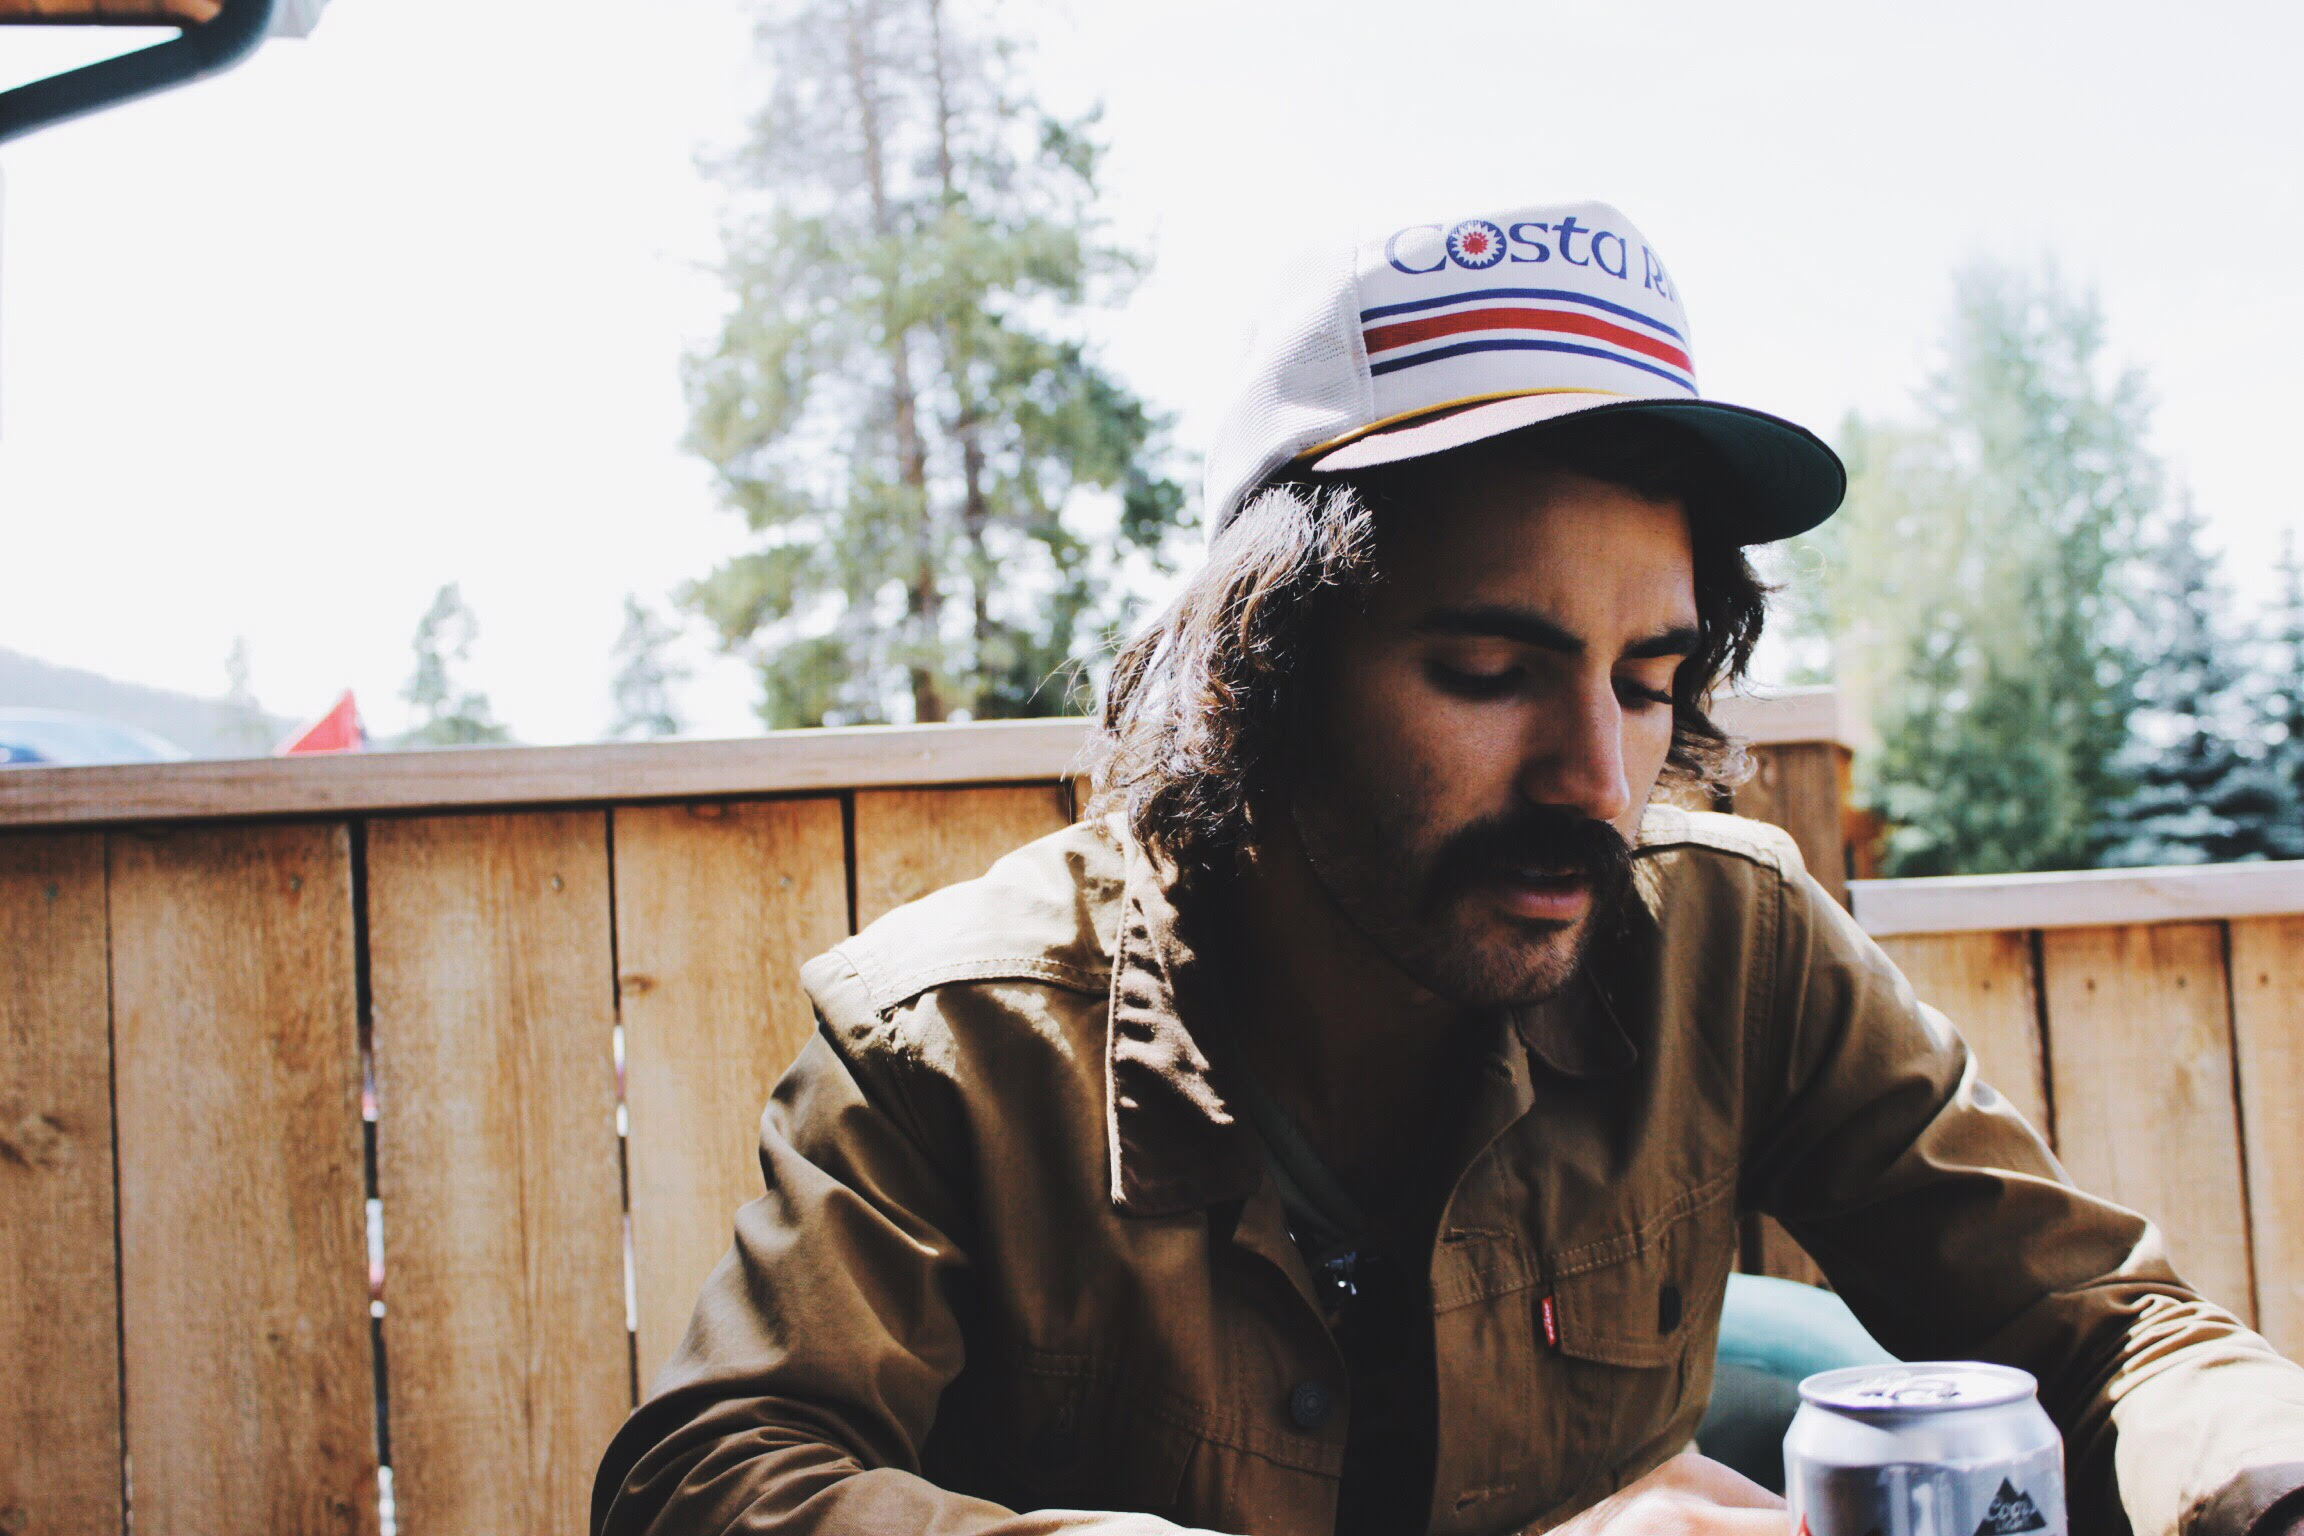 I snapped these photos of Ben as we sipped beers and shared stories after an early morning hike.